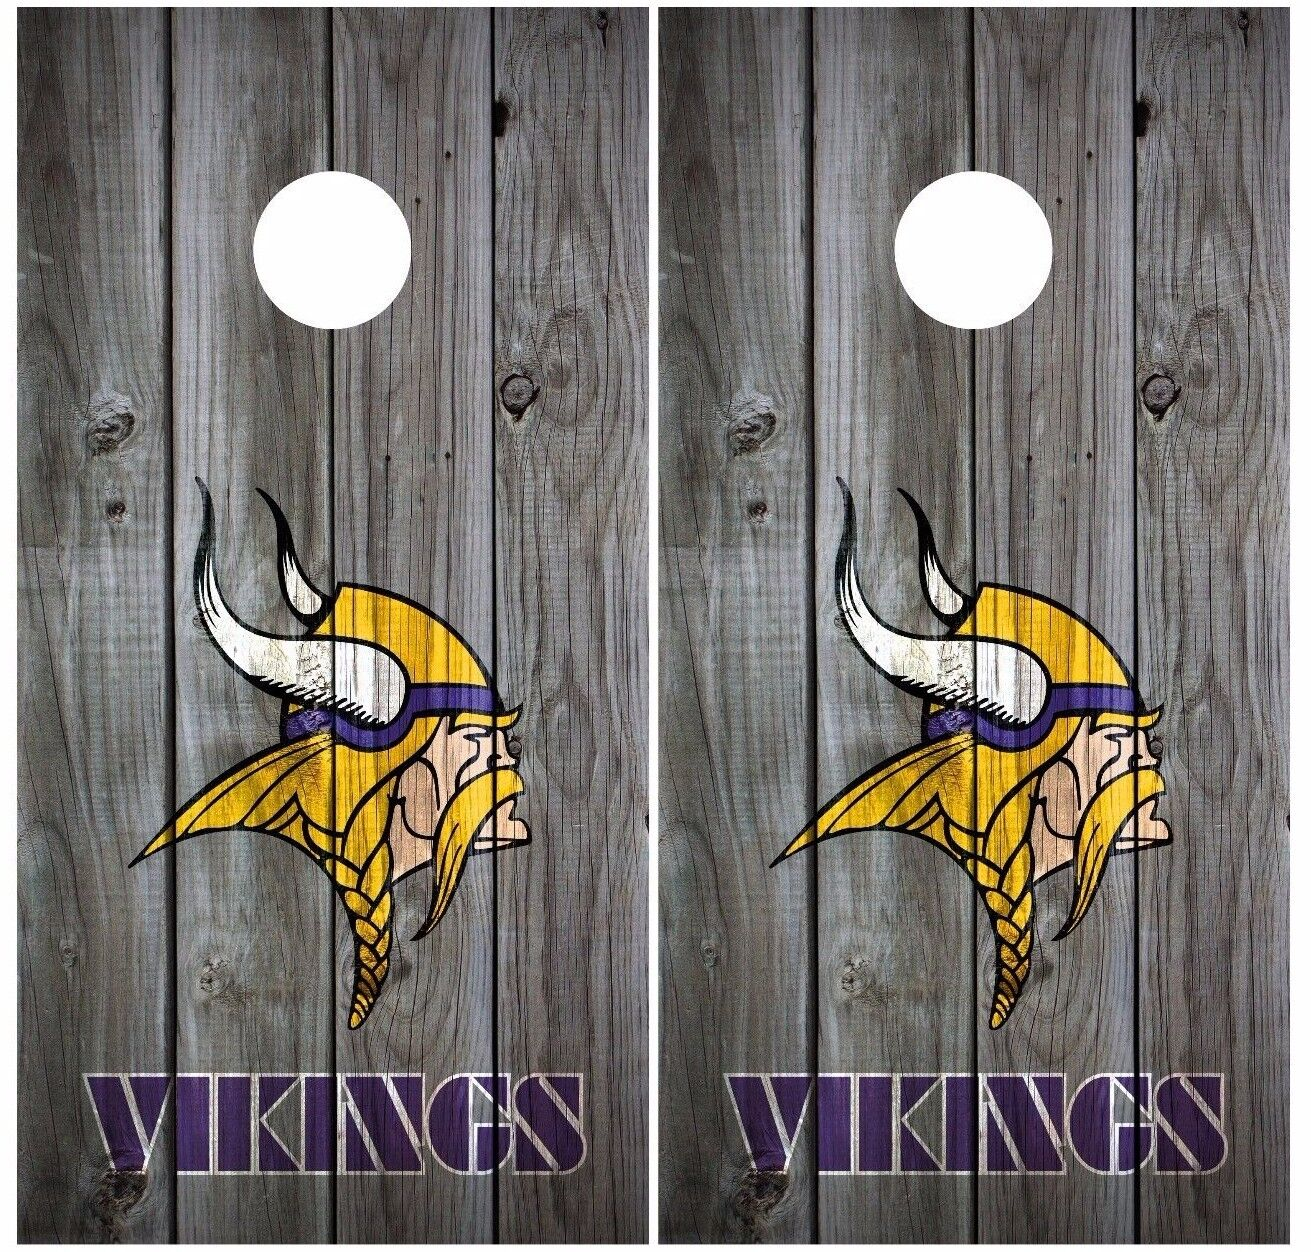 Minnesota Vikings Vintage Wood Cornhole Board Decal Wrap